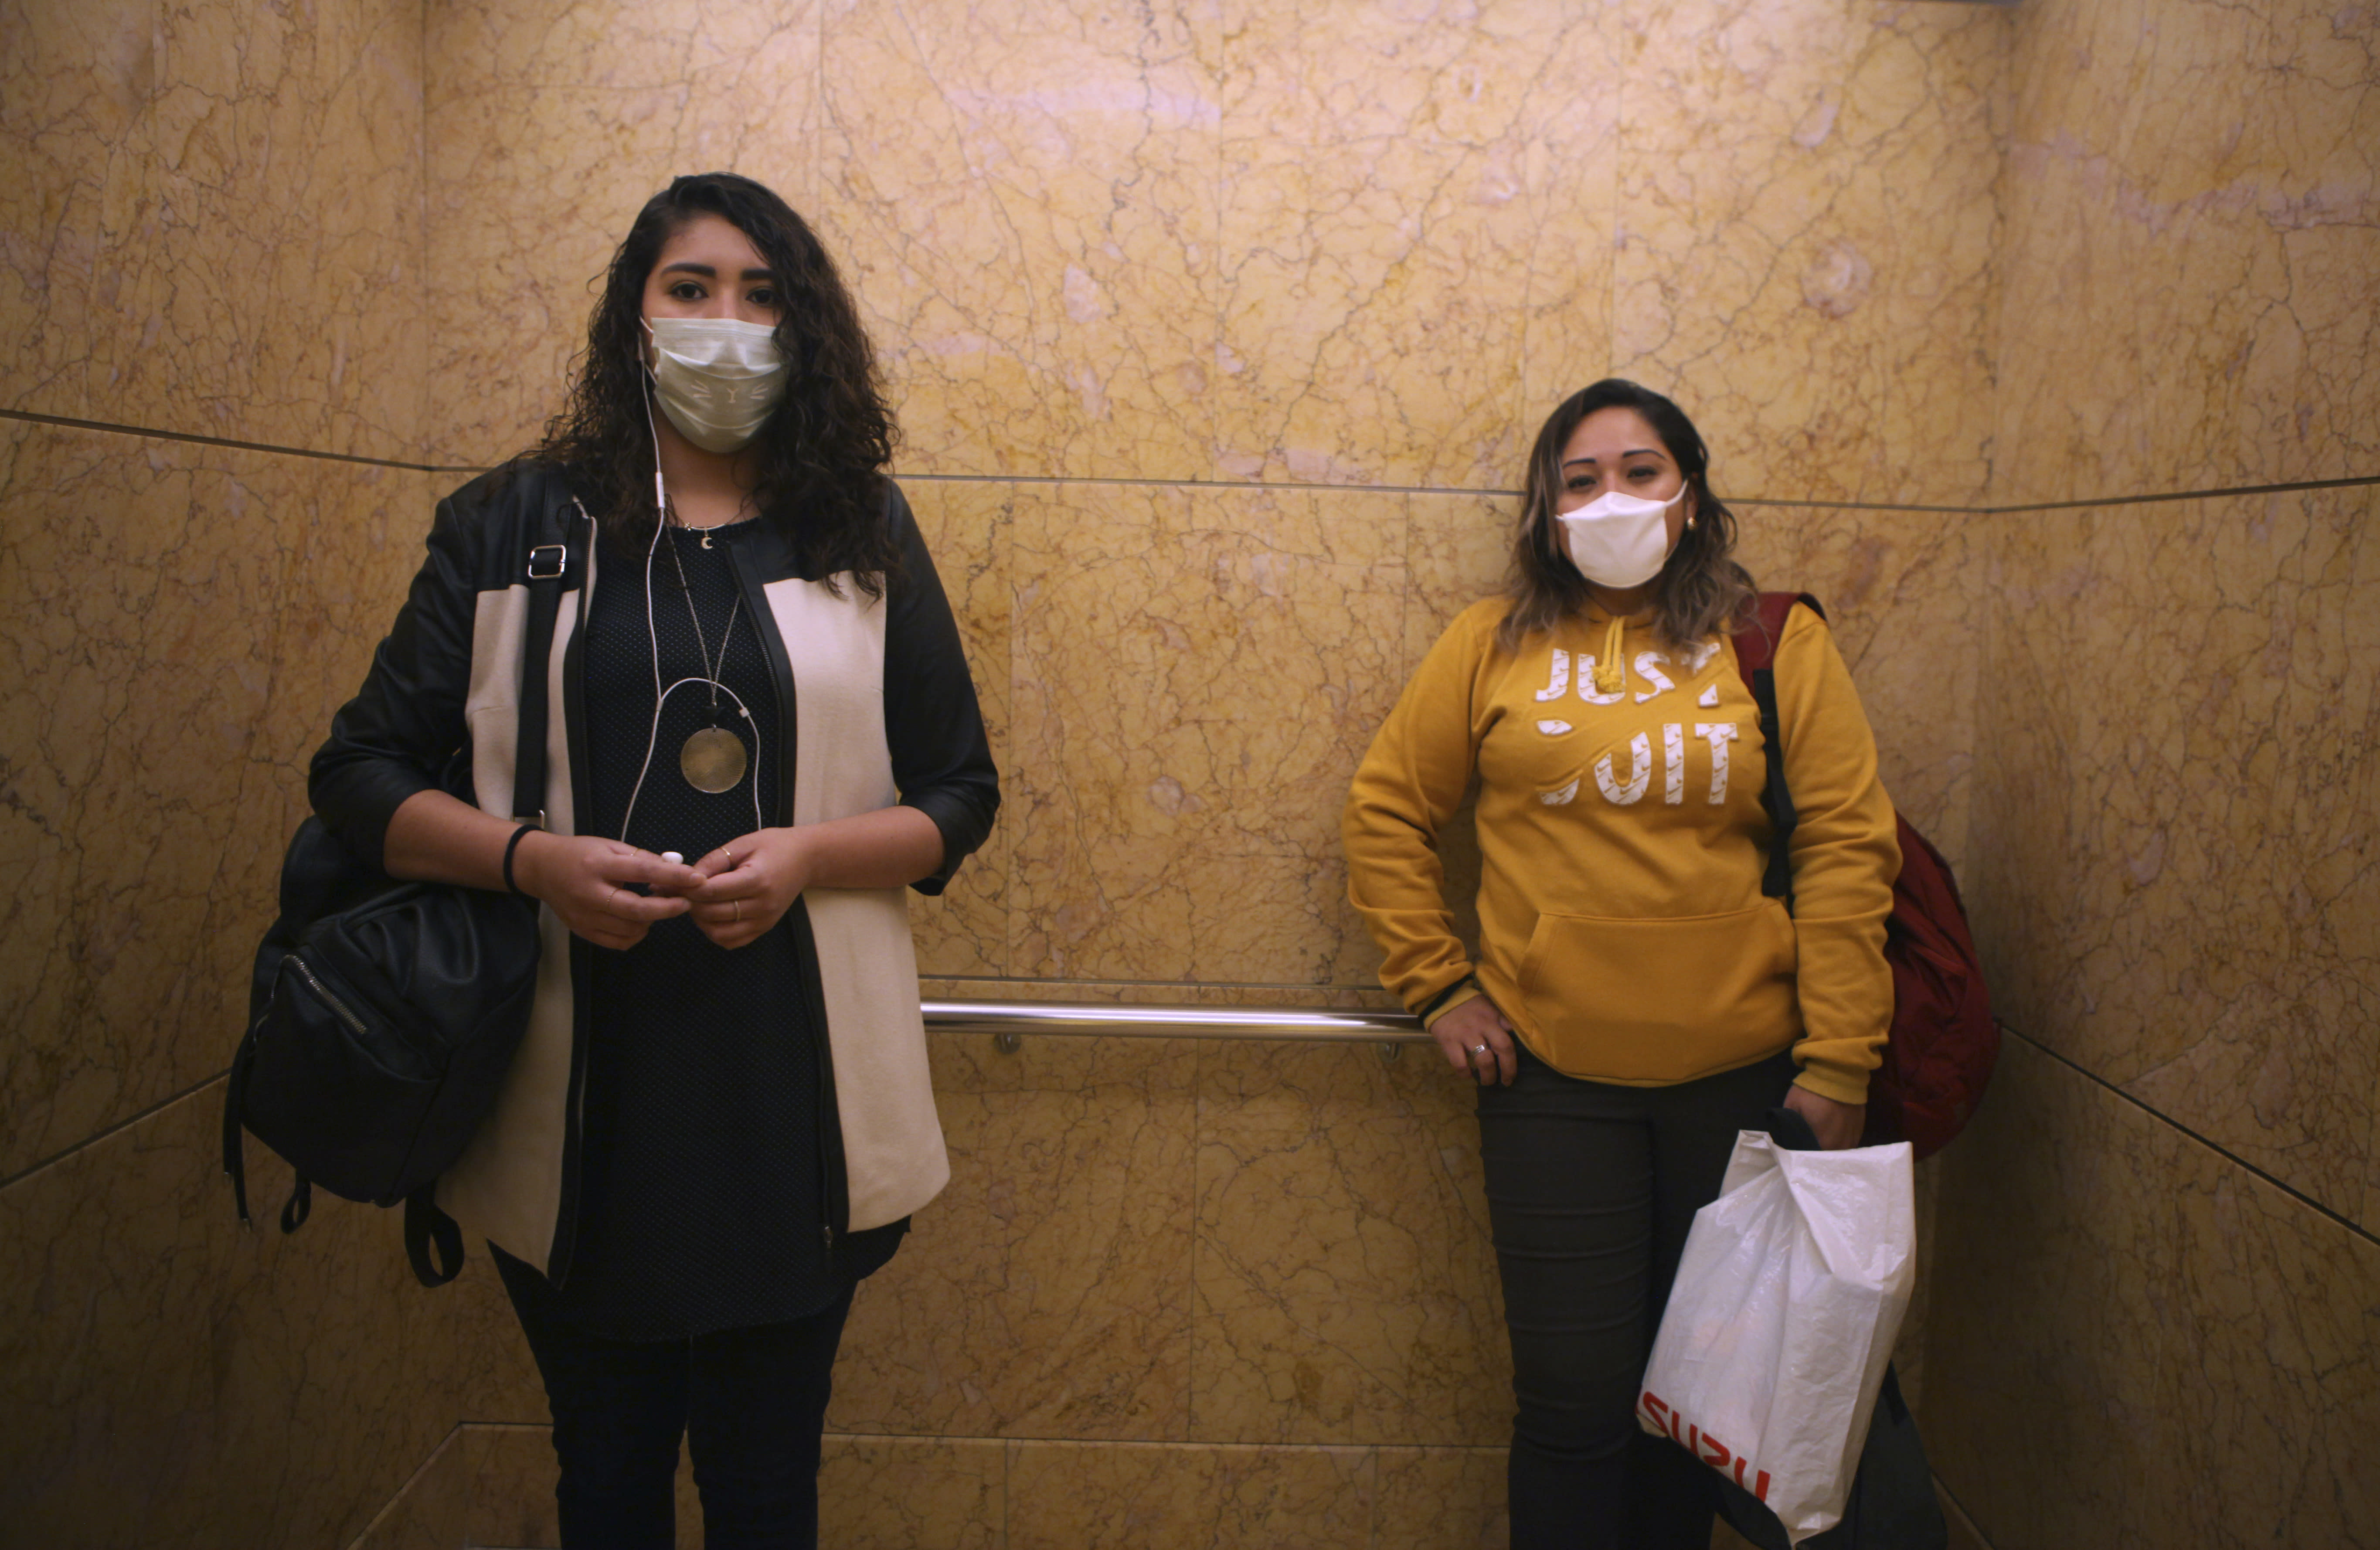 Women wear face masks as a precaution against the spread of the new coronavirus as they ride the elevator to their offices in Mexico City, Thursday, March 19, 2020. (AP Photo/Marco Ugarte)